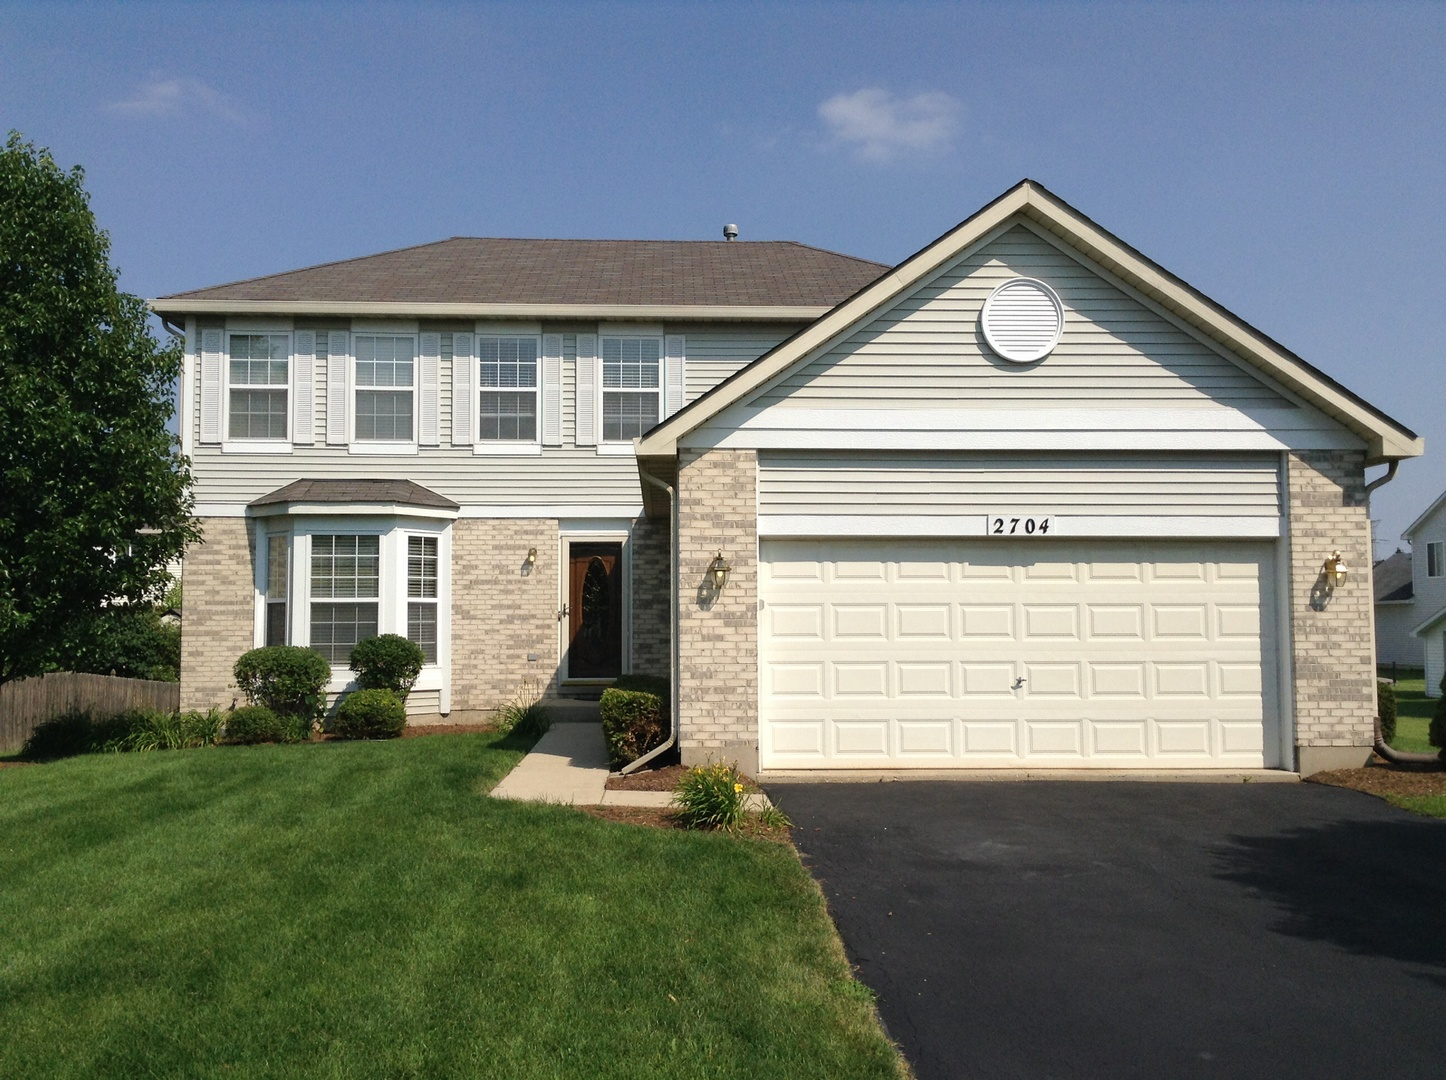 2704 Telluride ,Plainfield, Illinois 60586